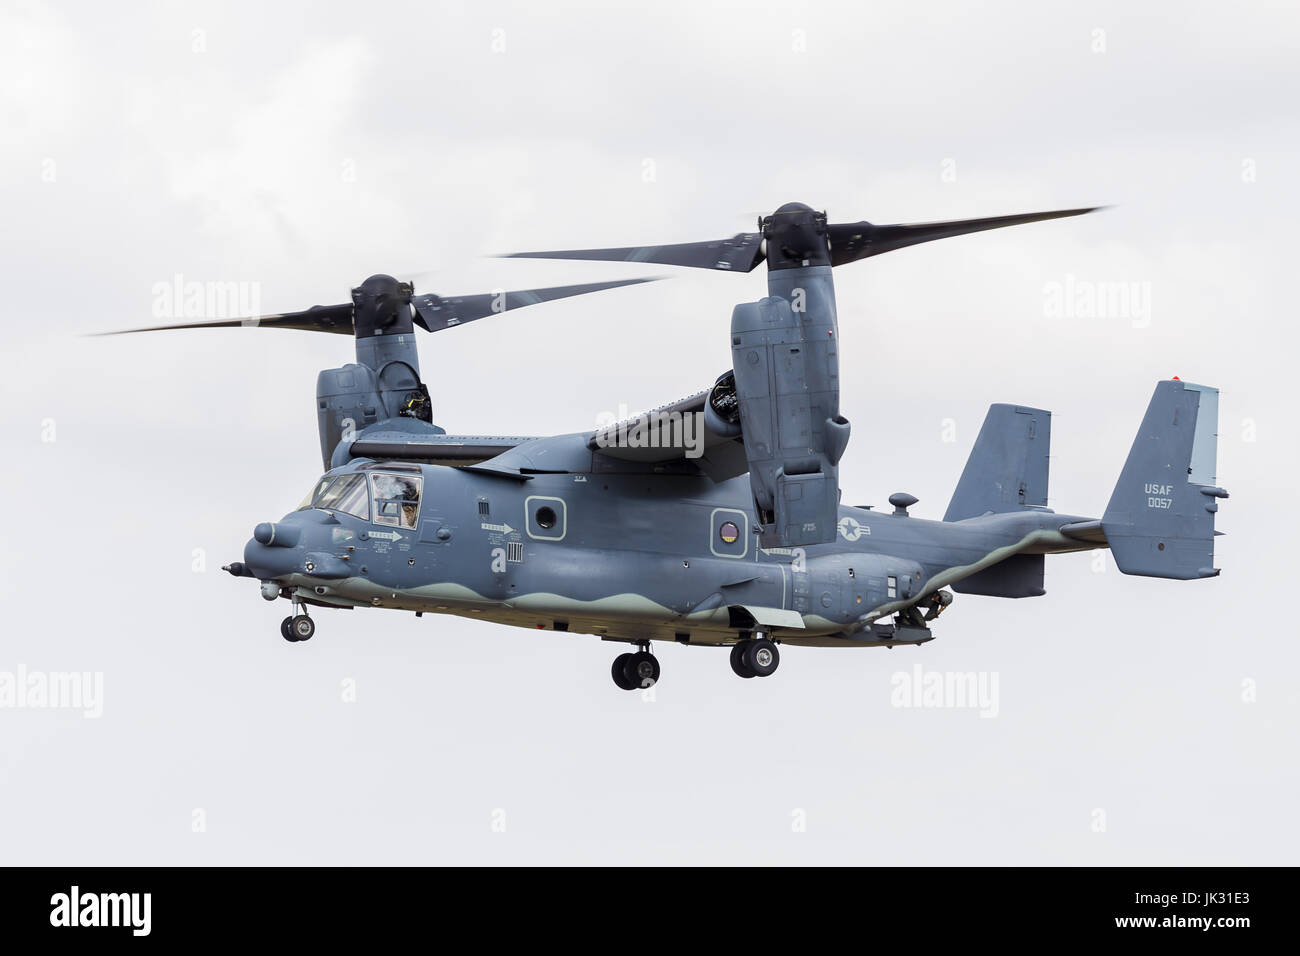 CV-22B Osprey from the USAF seen at the 2017 Royal International Air Tattoo at Royal Air Force Fairford in Gloucestershire - Stock Image